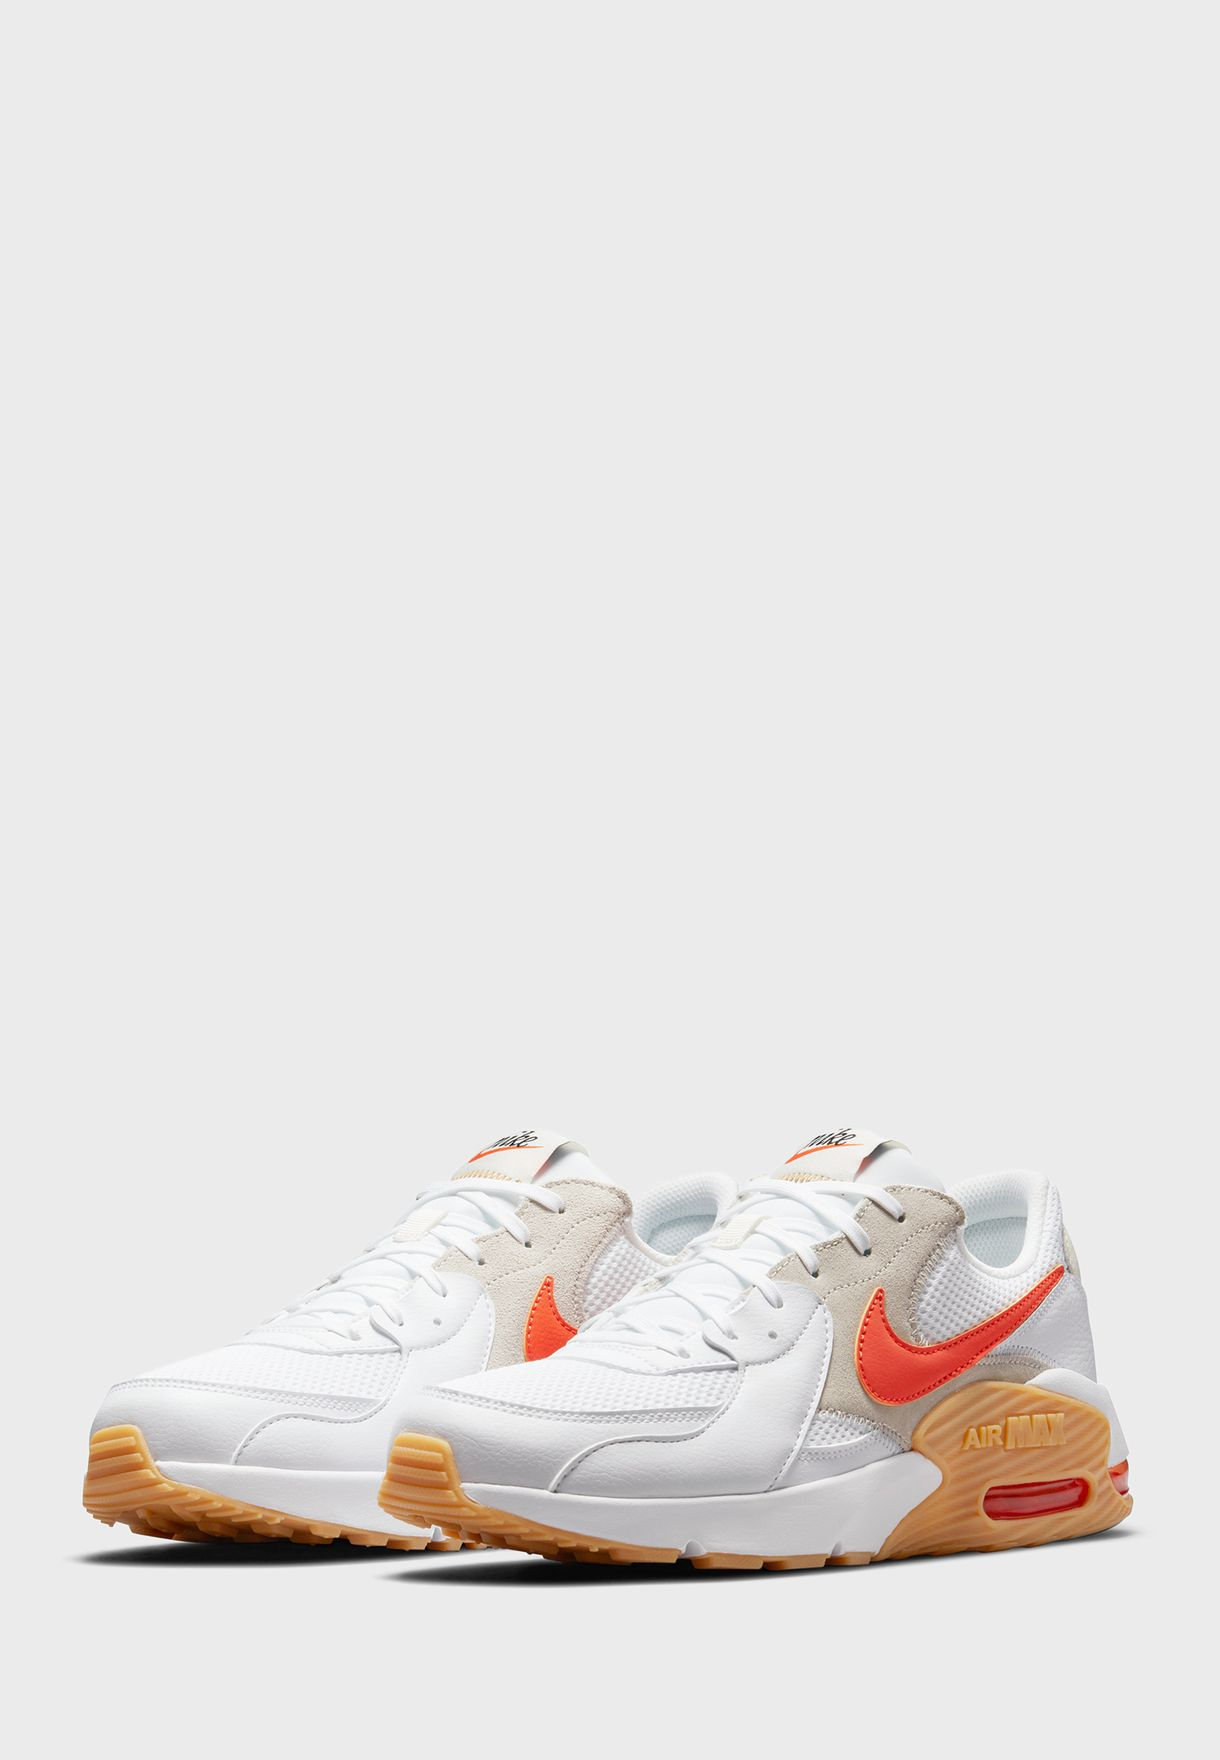 Air Max Excee S50